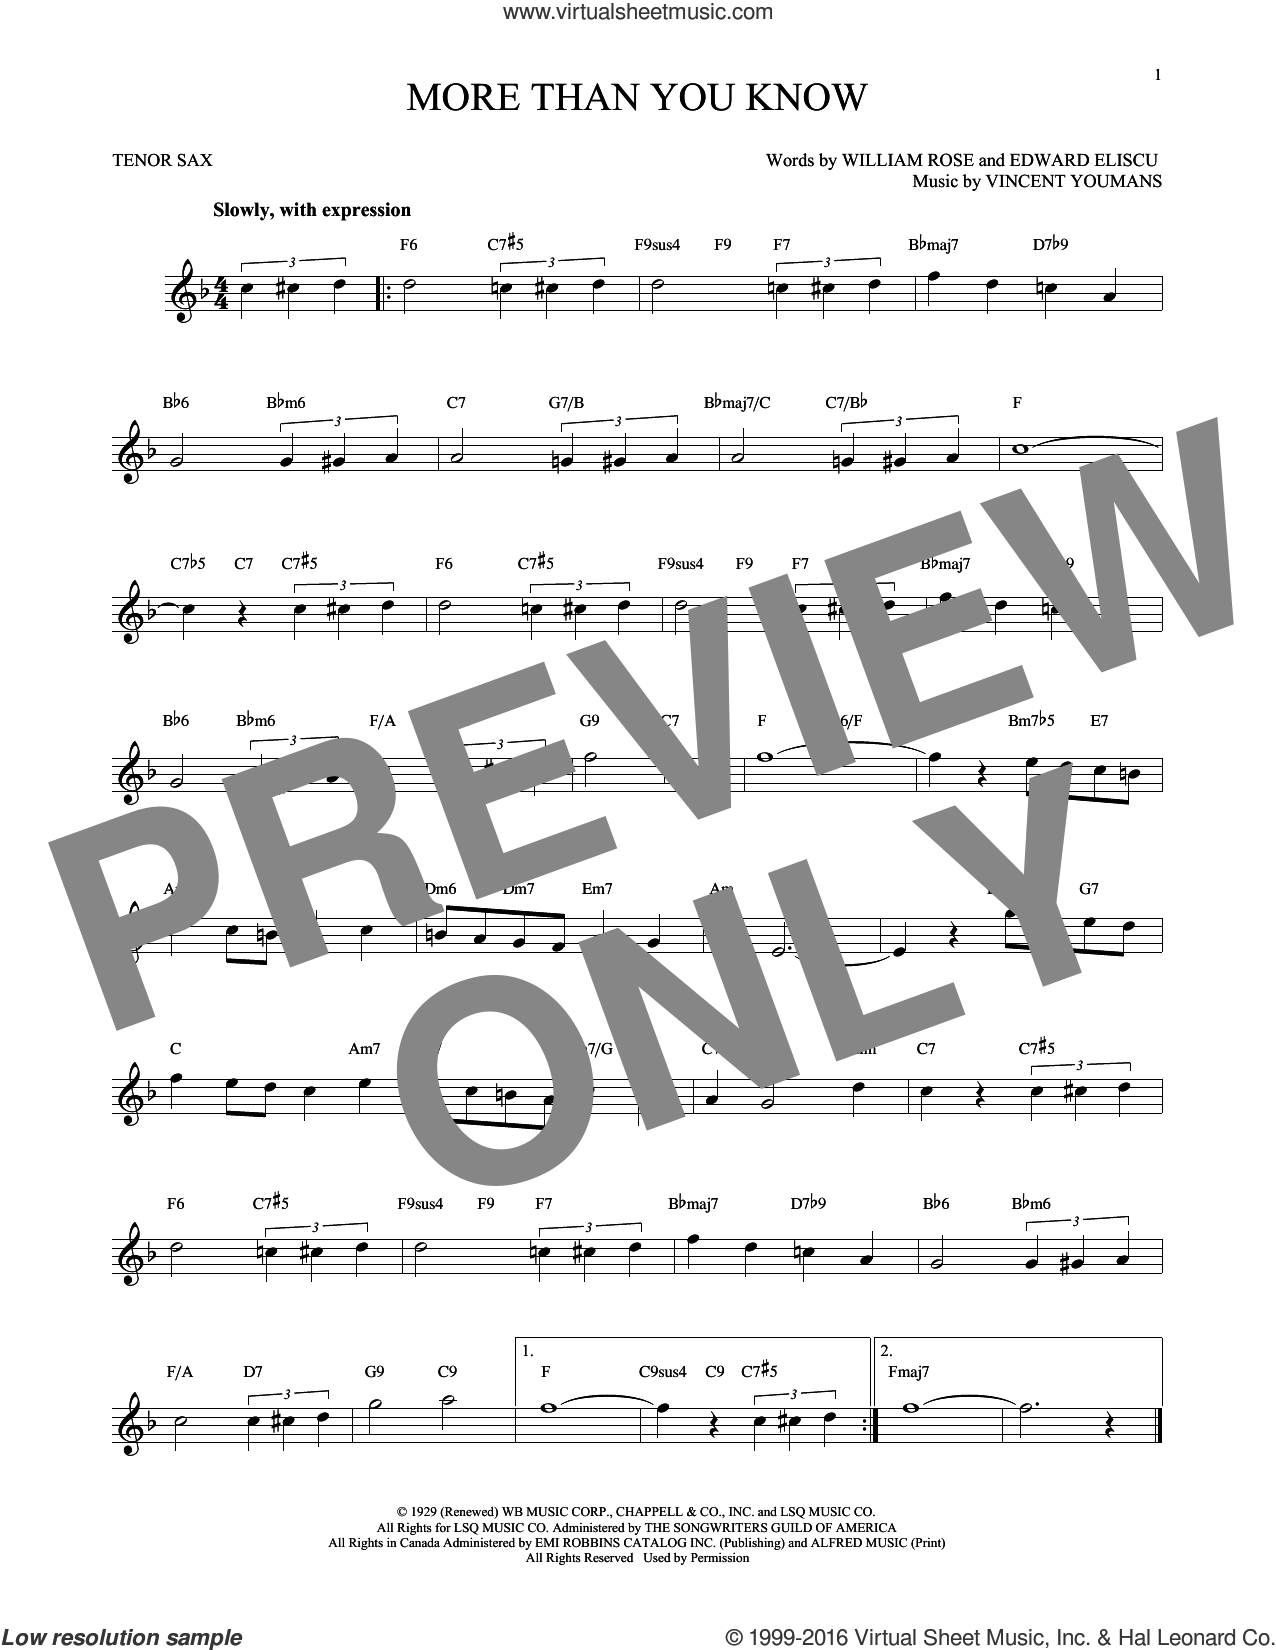 More Than You Know sheet music for tenor saxophone solo by Vincent Youmans, Edward Eliscu and William Rose, intermediate skill level